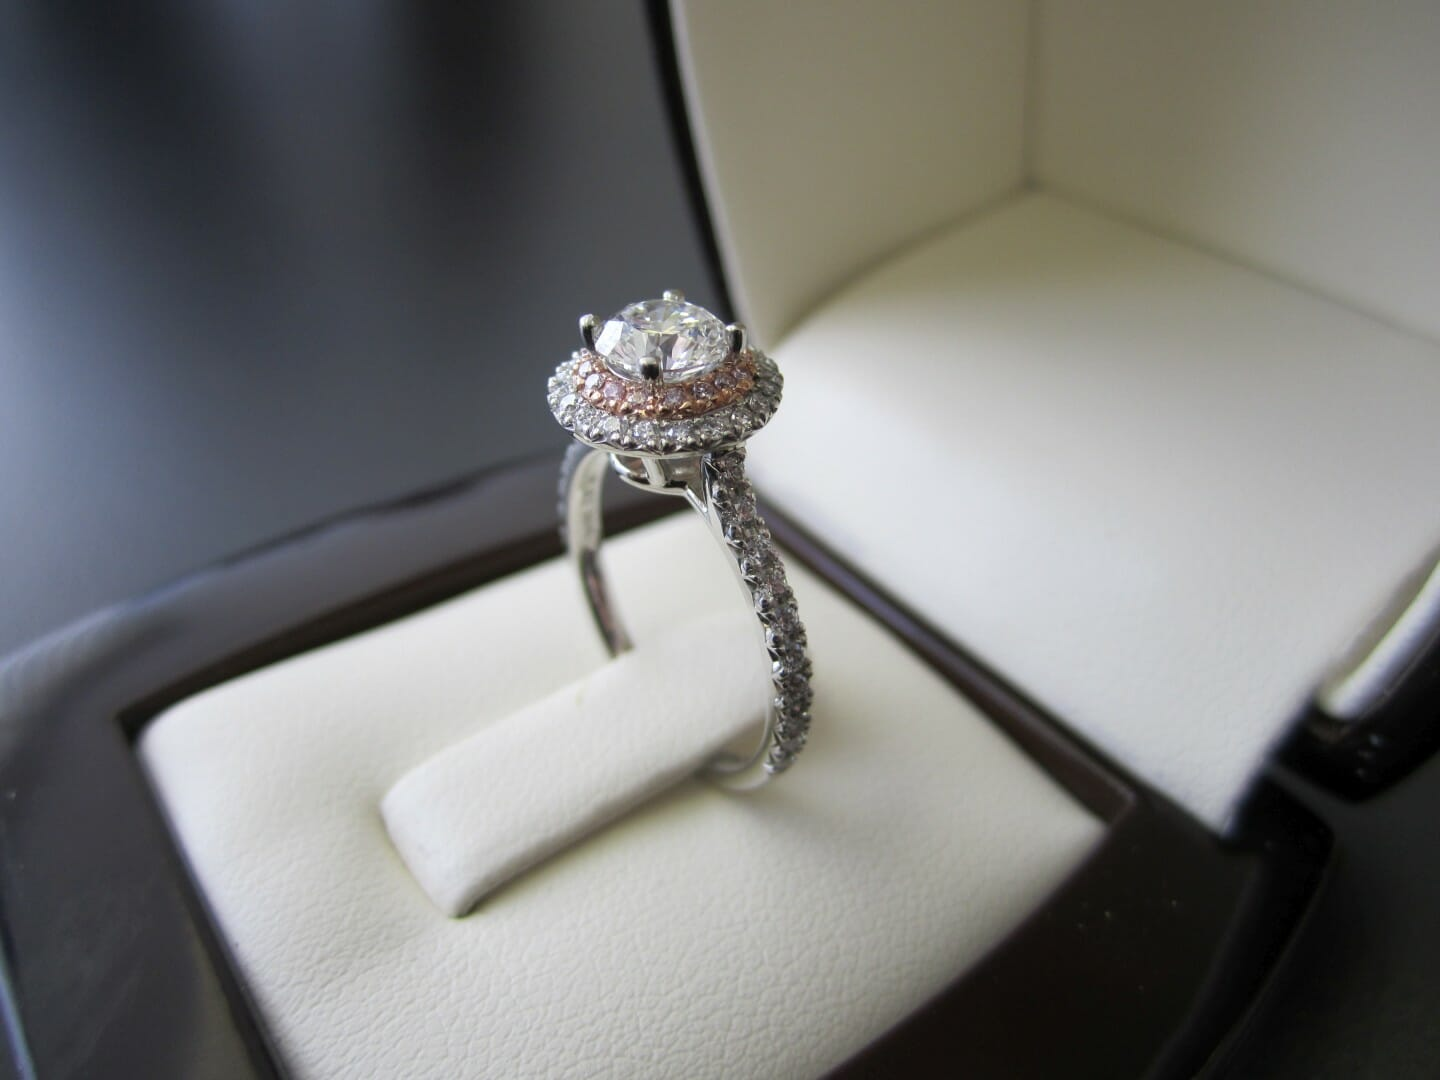 Picture of 0.70ct Round Diamond in Platinum and 18K Rose Gold Double Halo Engagement Ring with French Micro Pave Setting